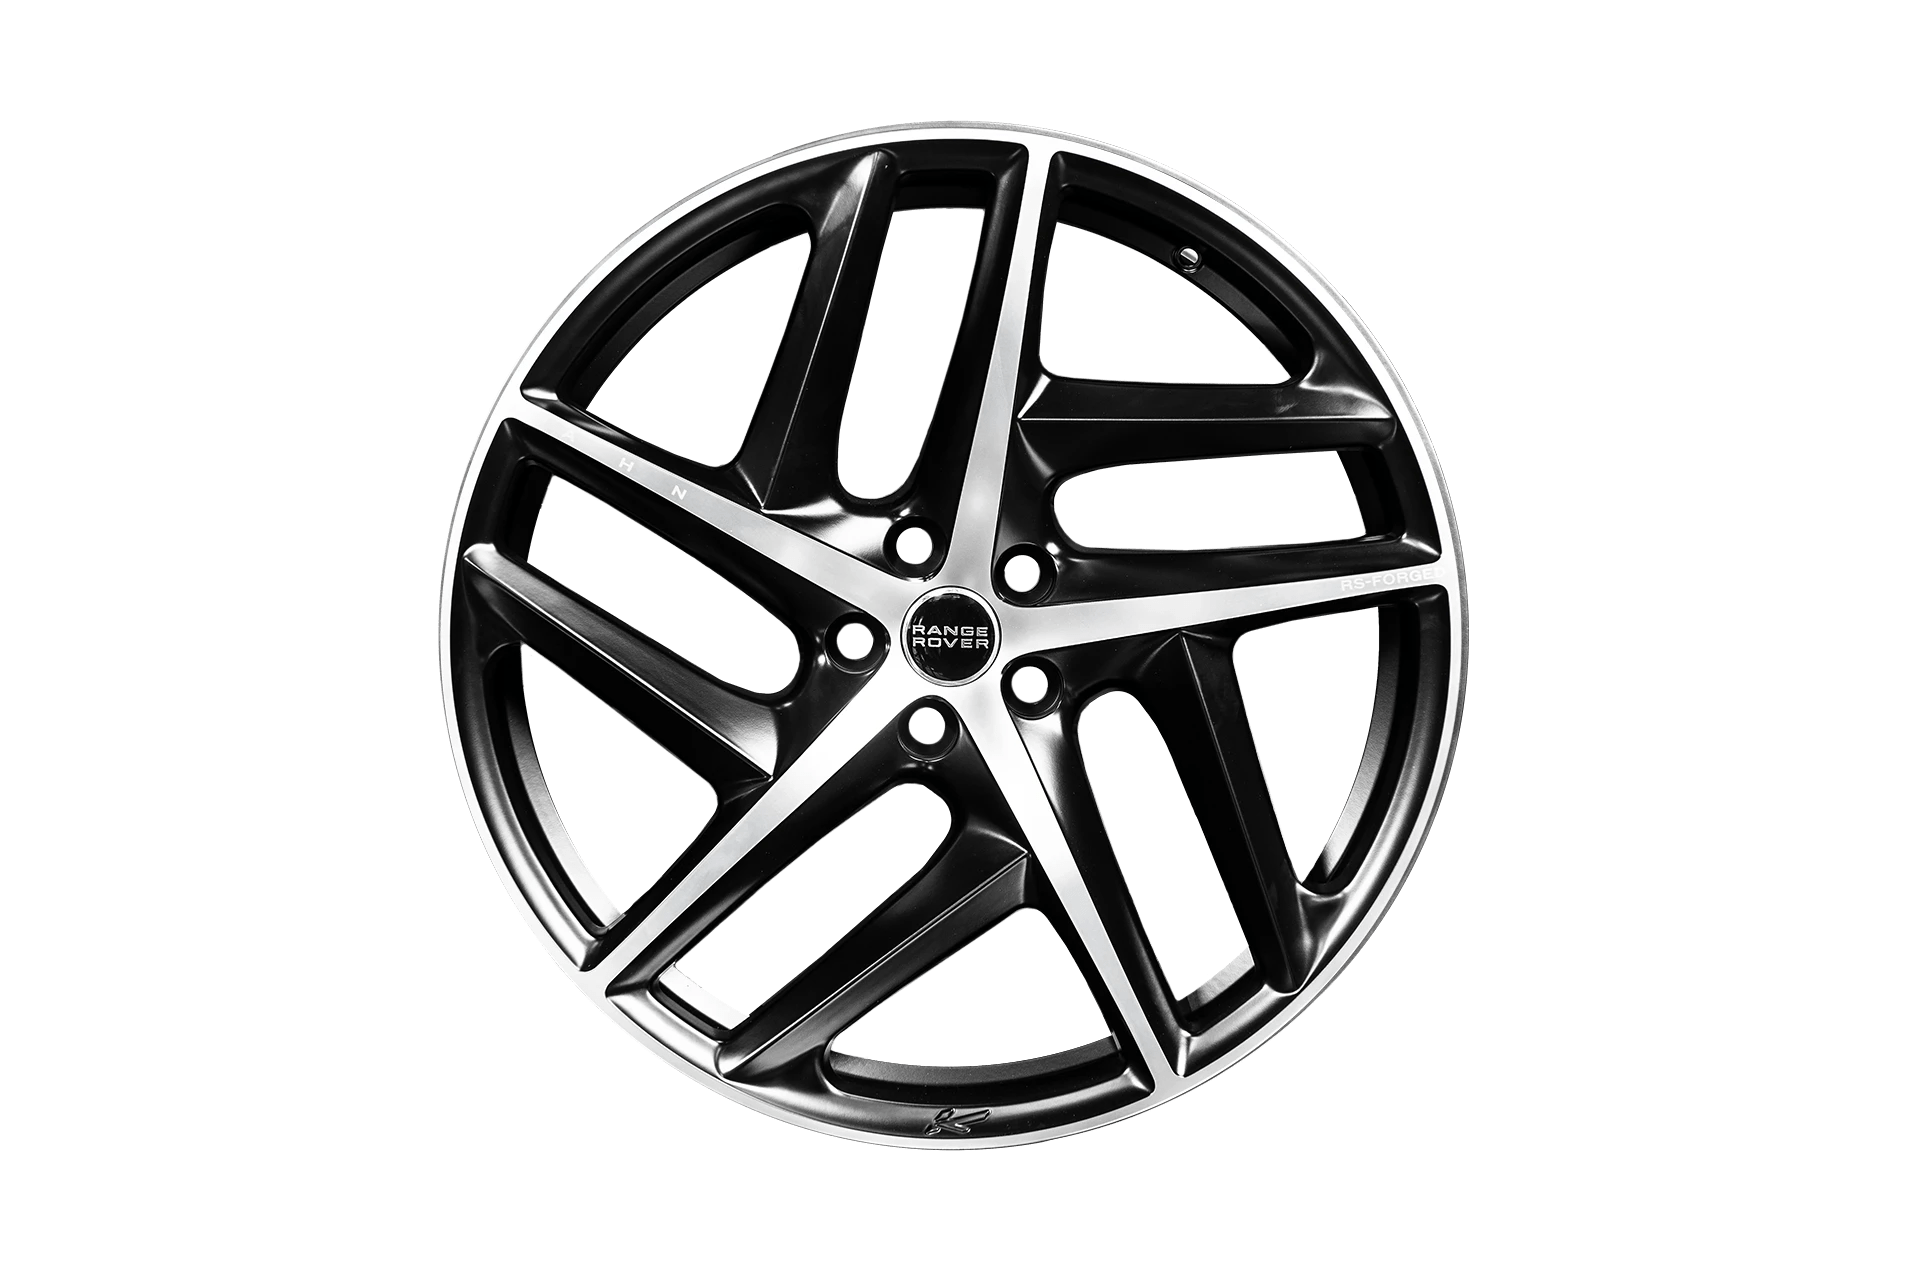 Range Rover Sport SVR (2018-PRESENT) Type 52 RS-Forged Alloy Wheels - Project Kahn